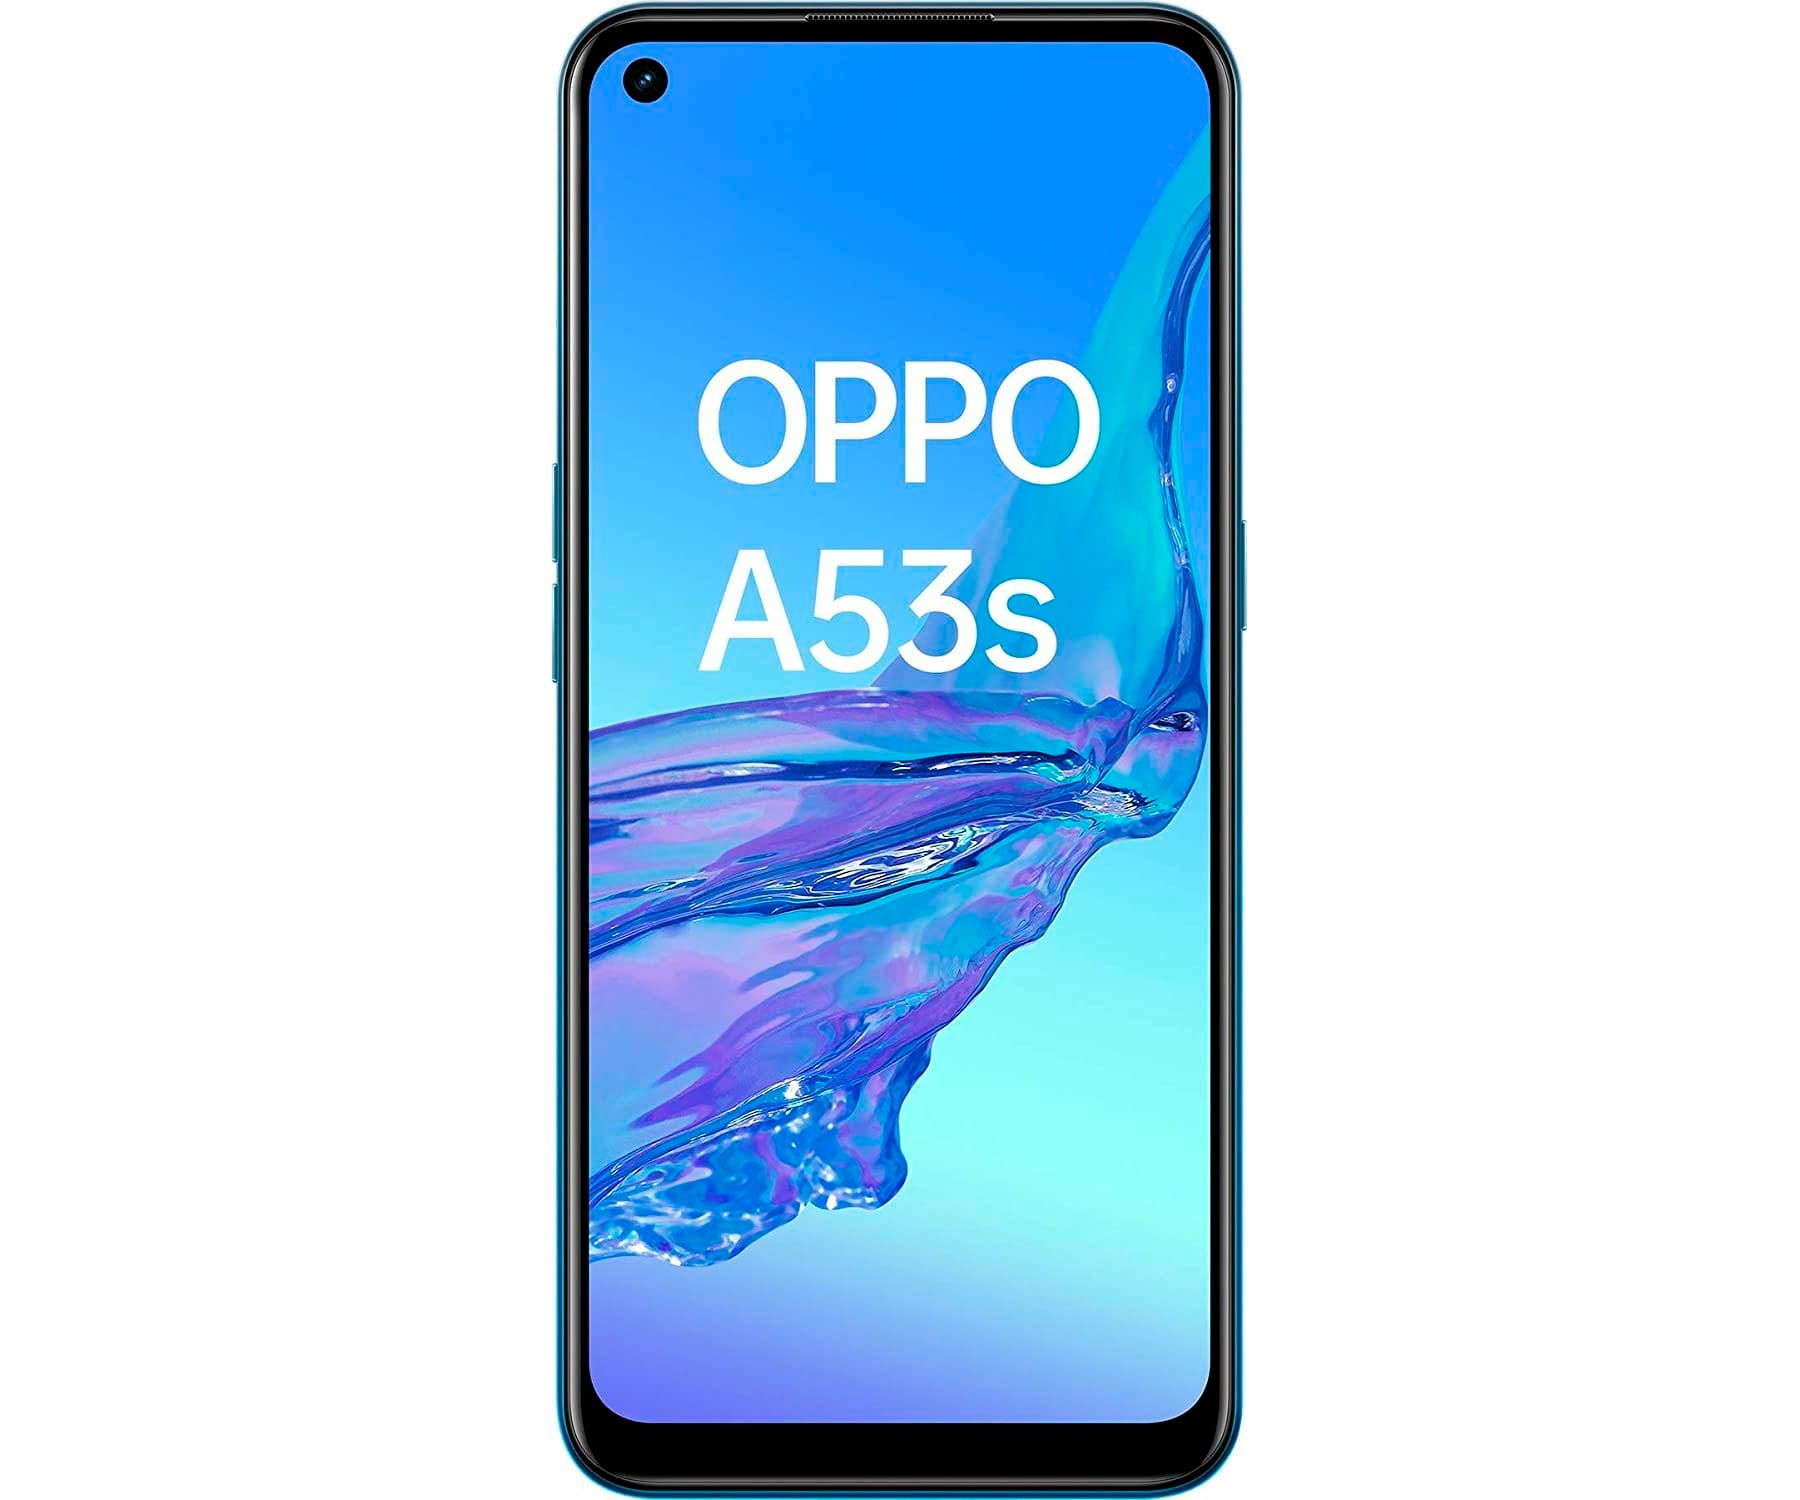 OPPO A53S AZUL MÓVIL DUAL SIM 4G 6.5'' IPS 90Hz HD+ OCTACORE 128GB 4GB RAM TRICAM 13MP SELFIES 16MP